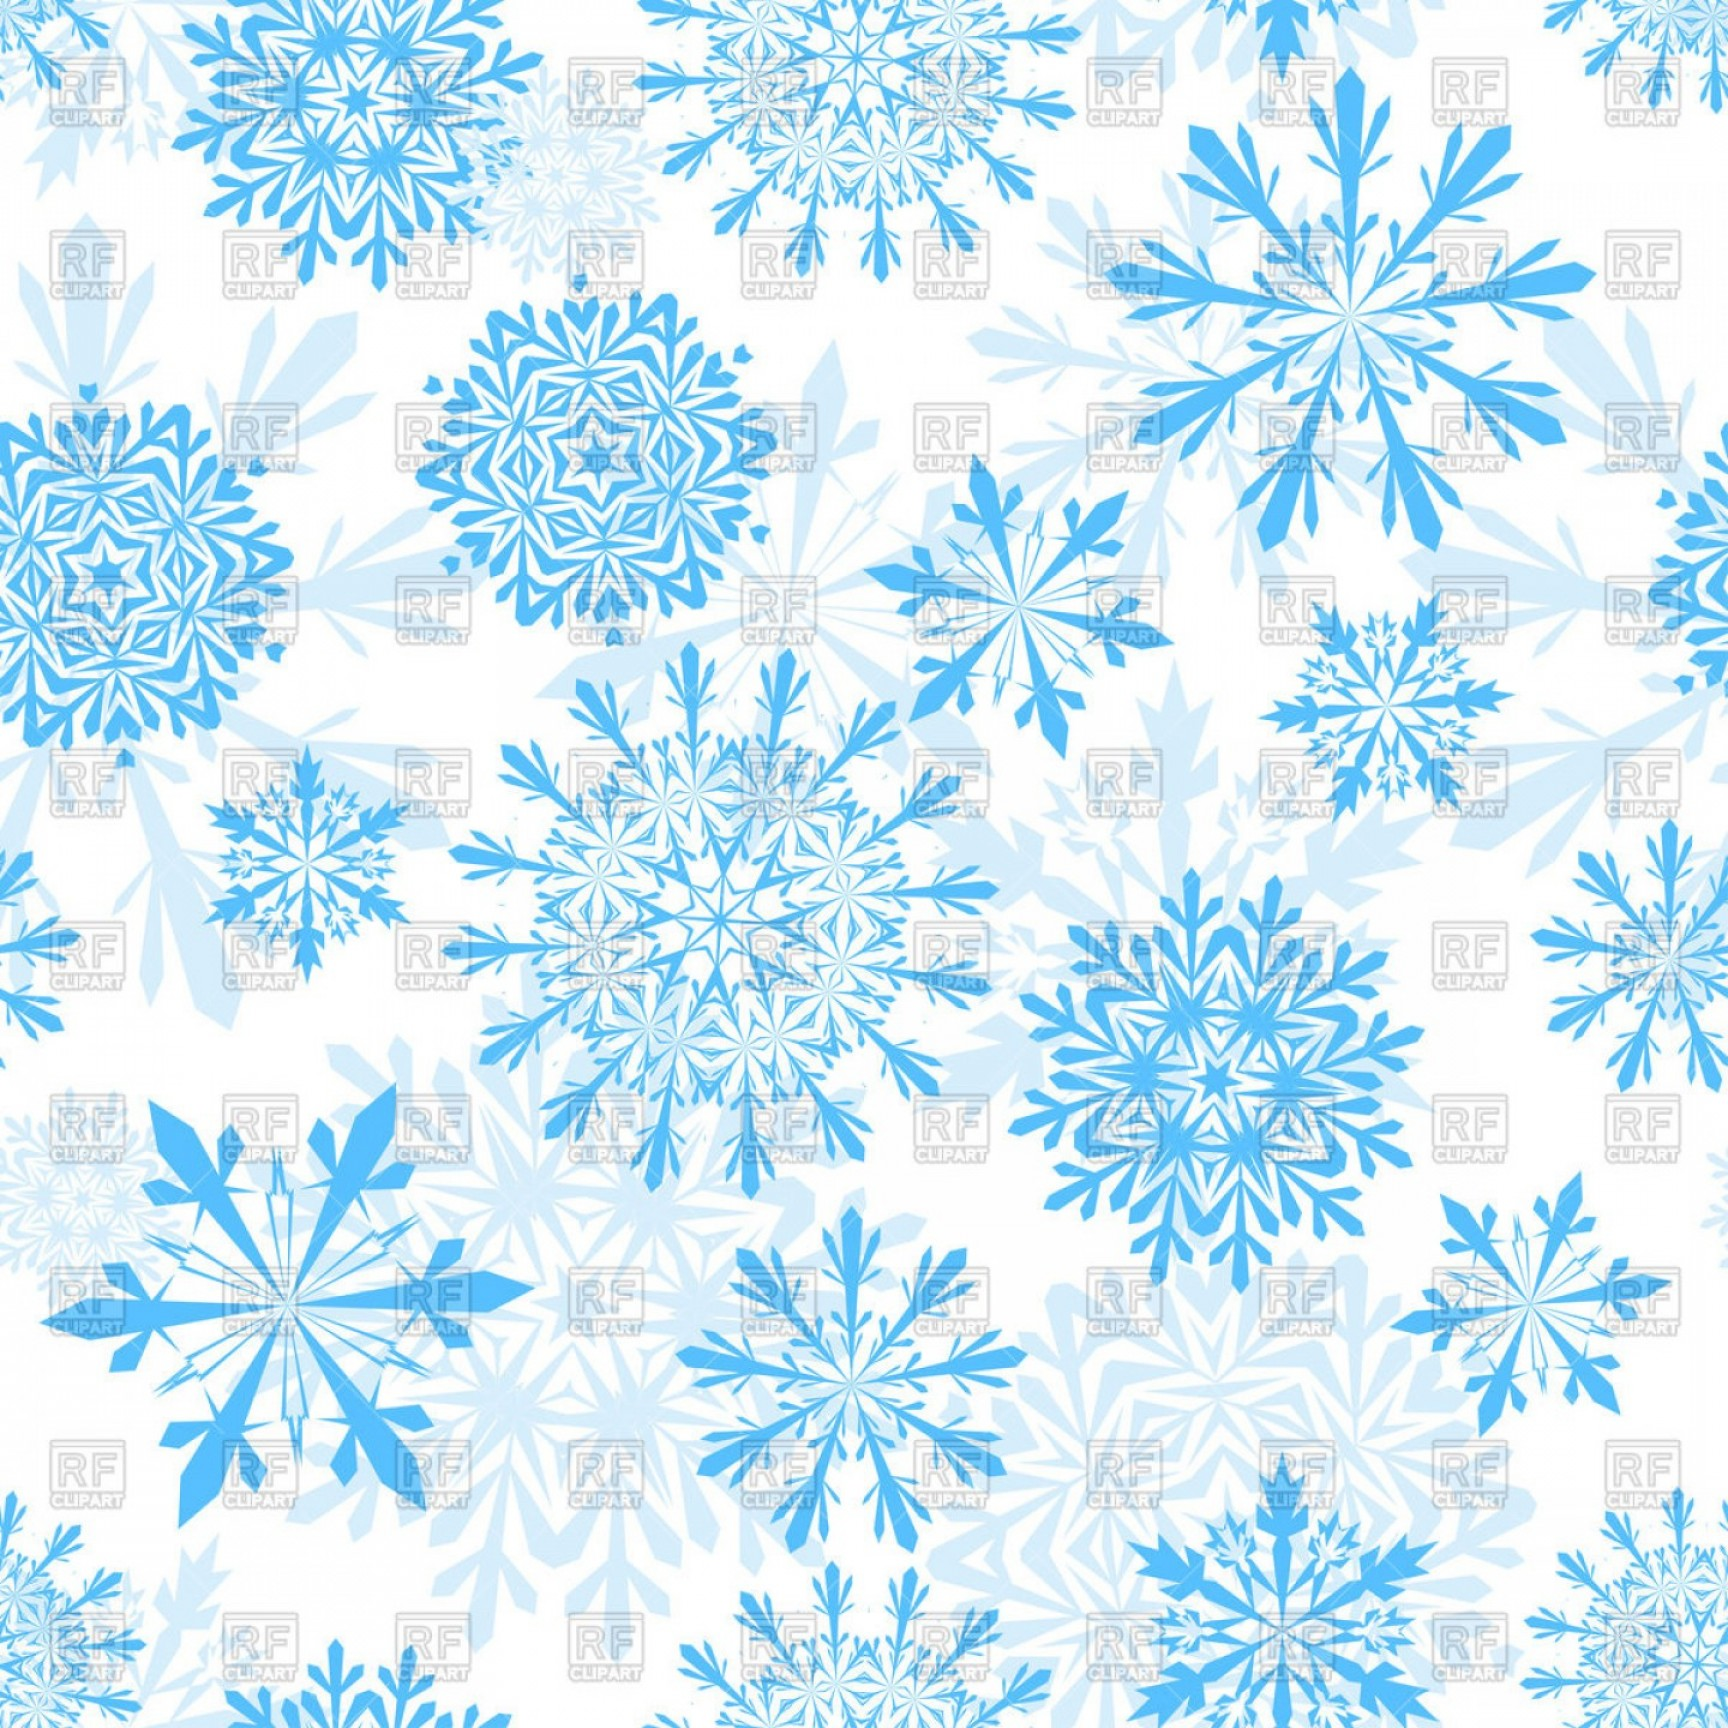 Snowflakes background clipart free clip art freeuse Free Snowflake Background Clipart Seamless Winter Background ... clip art freeuse